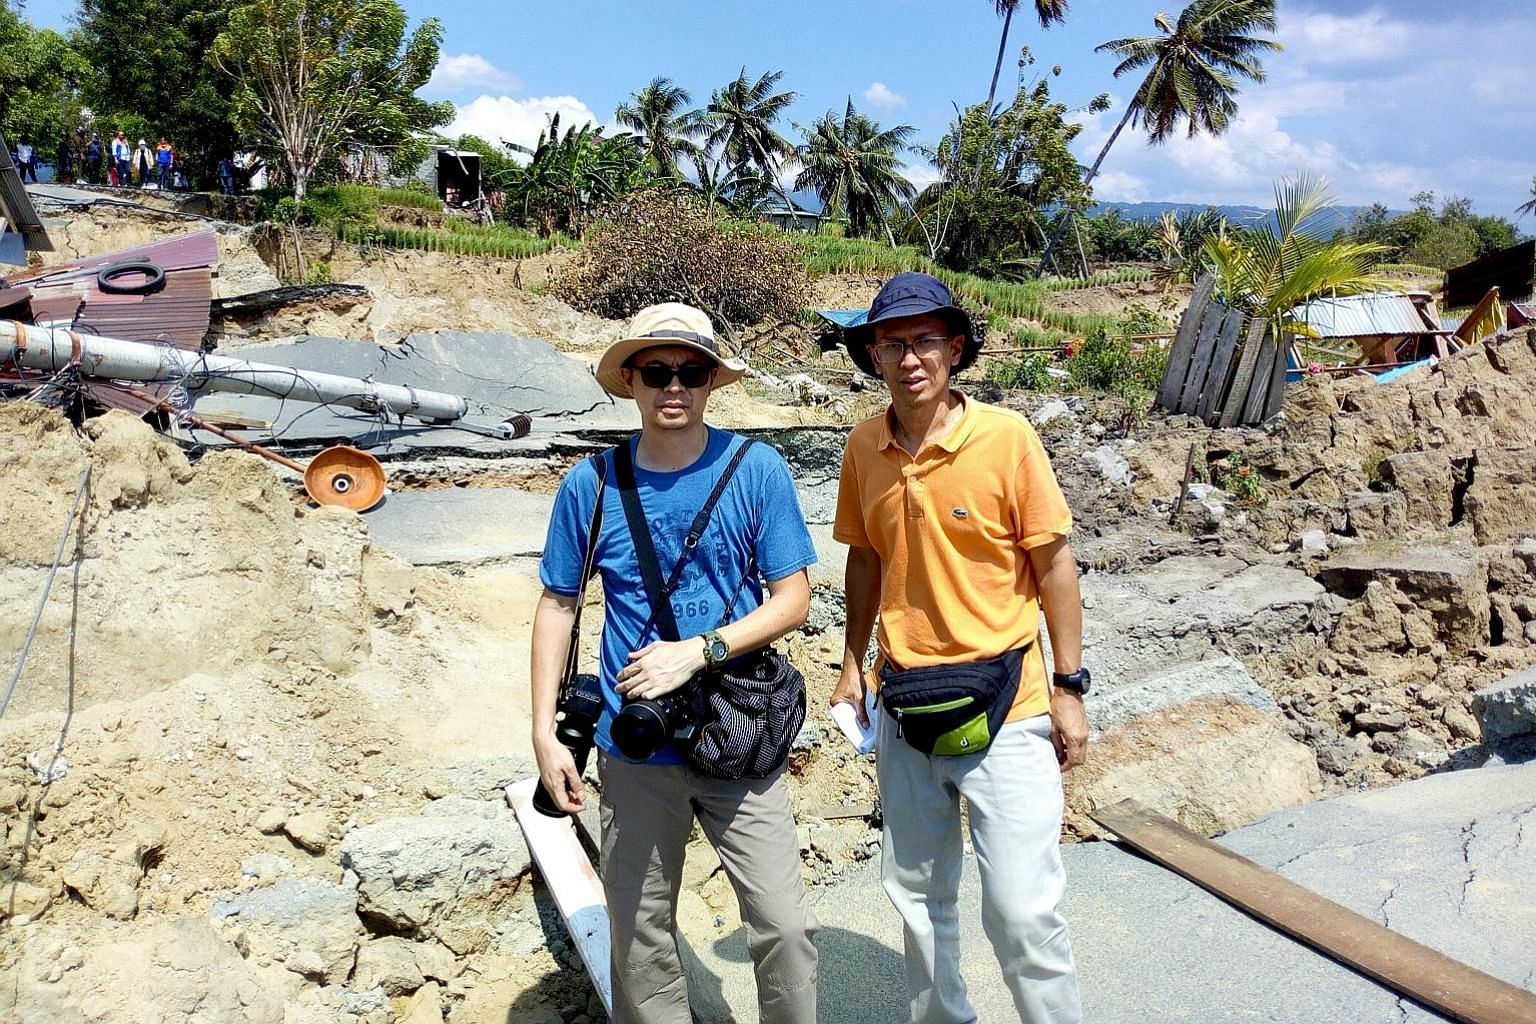 The writer (far left) and Indonesia Correspondent Wahyudi Soeriaatmadja in Palu. They had arrived at night last Tuesday. The city was like a war zone with widespread devastation.